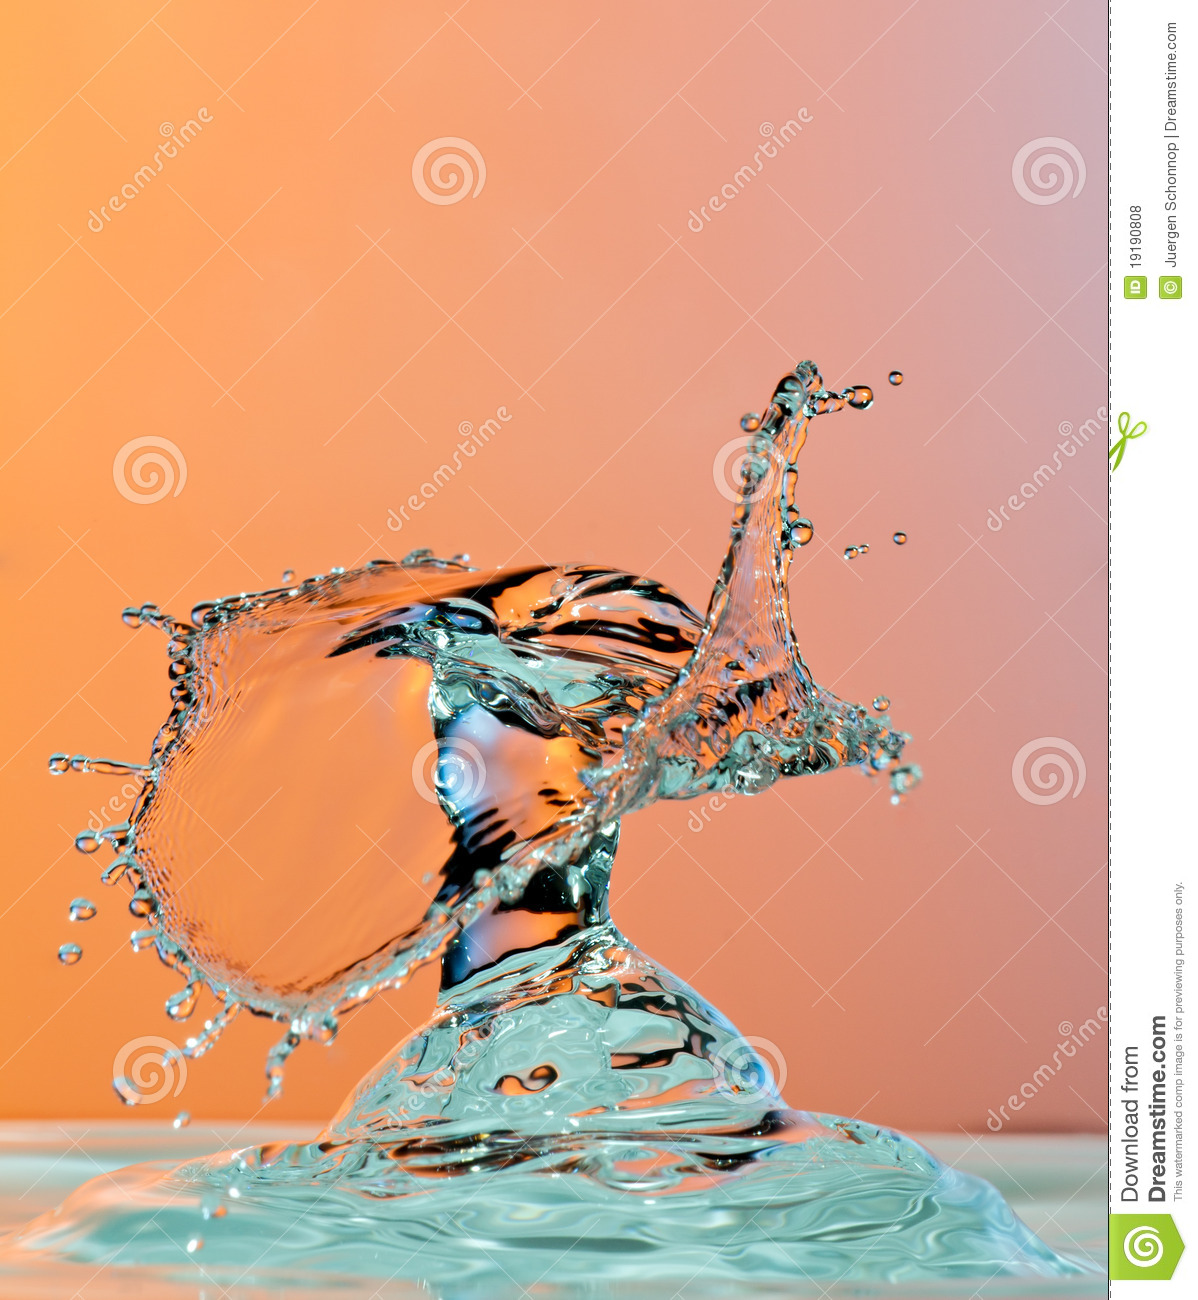 Dancing Water Droplet High Speed Photography Royalty Free Stock.